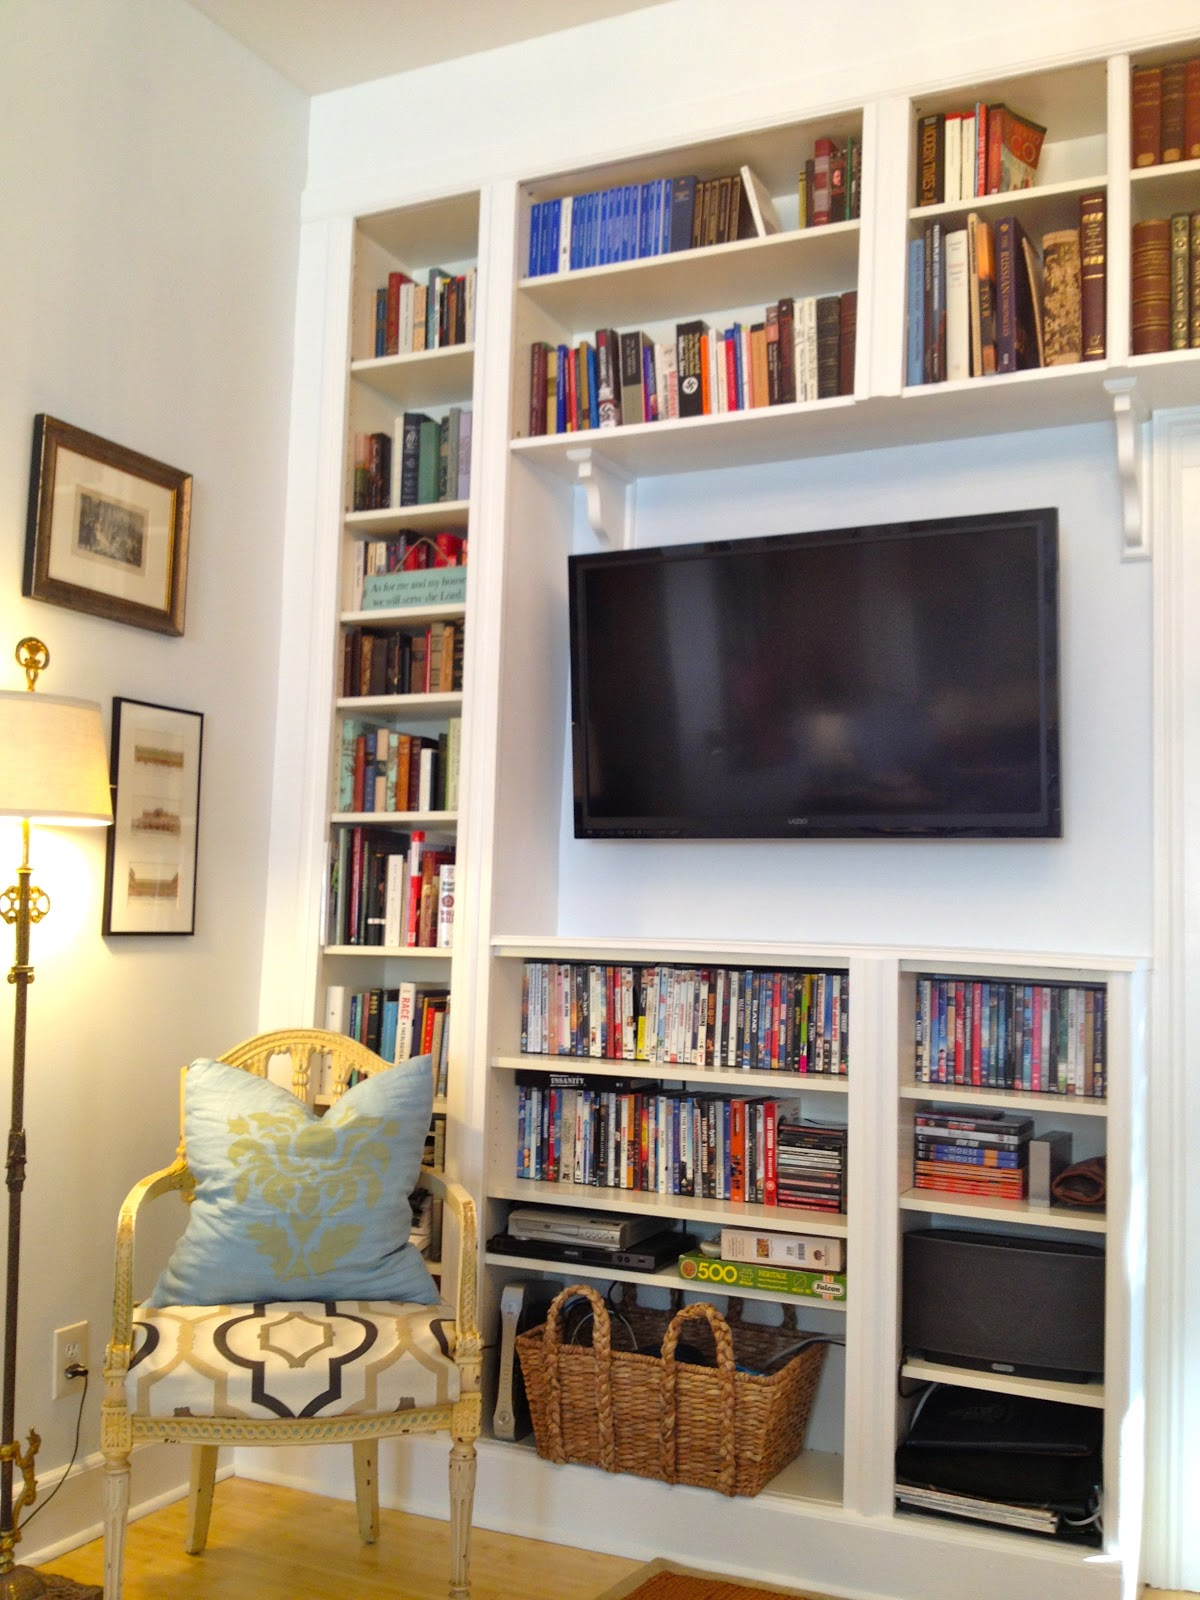 Mel & Liza Built In Bookshelves Before & After Ikea Hack  -> Ikea Wandregal Hack